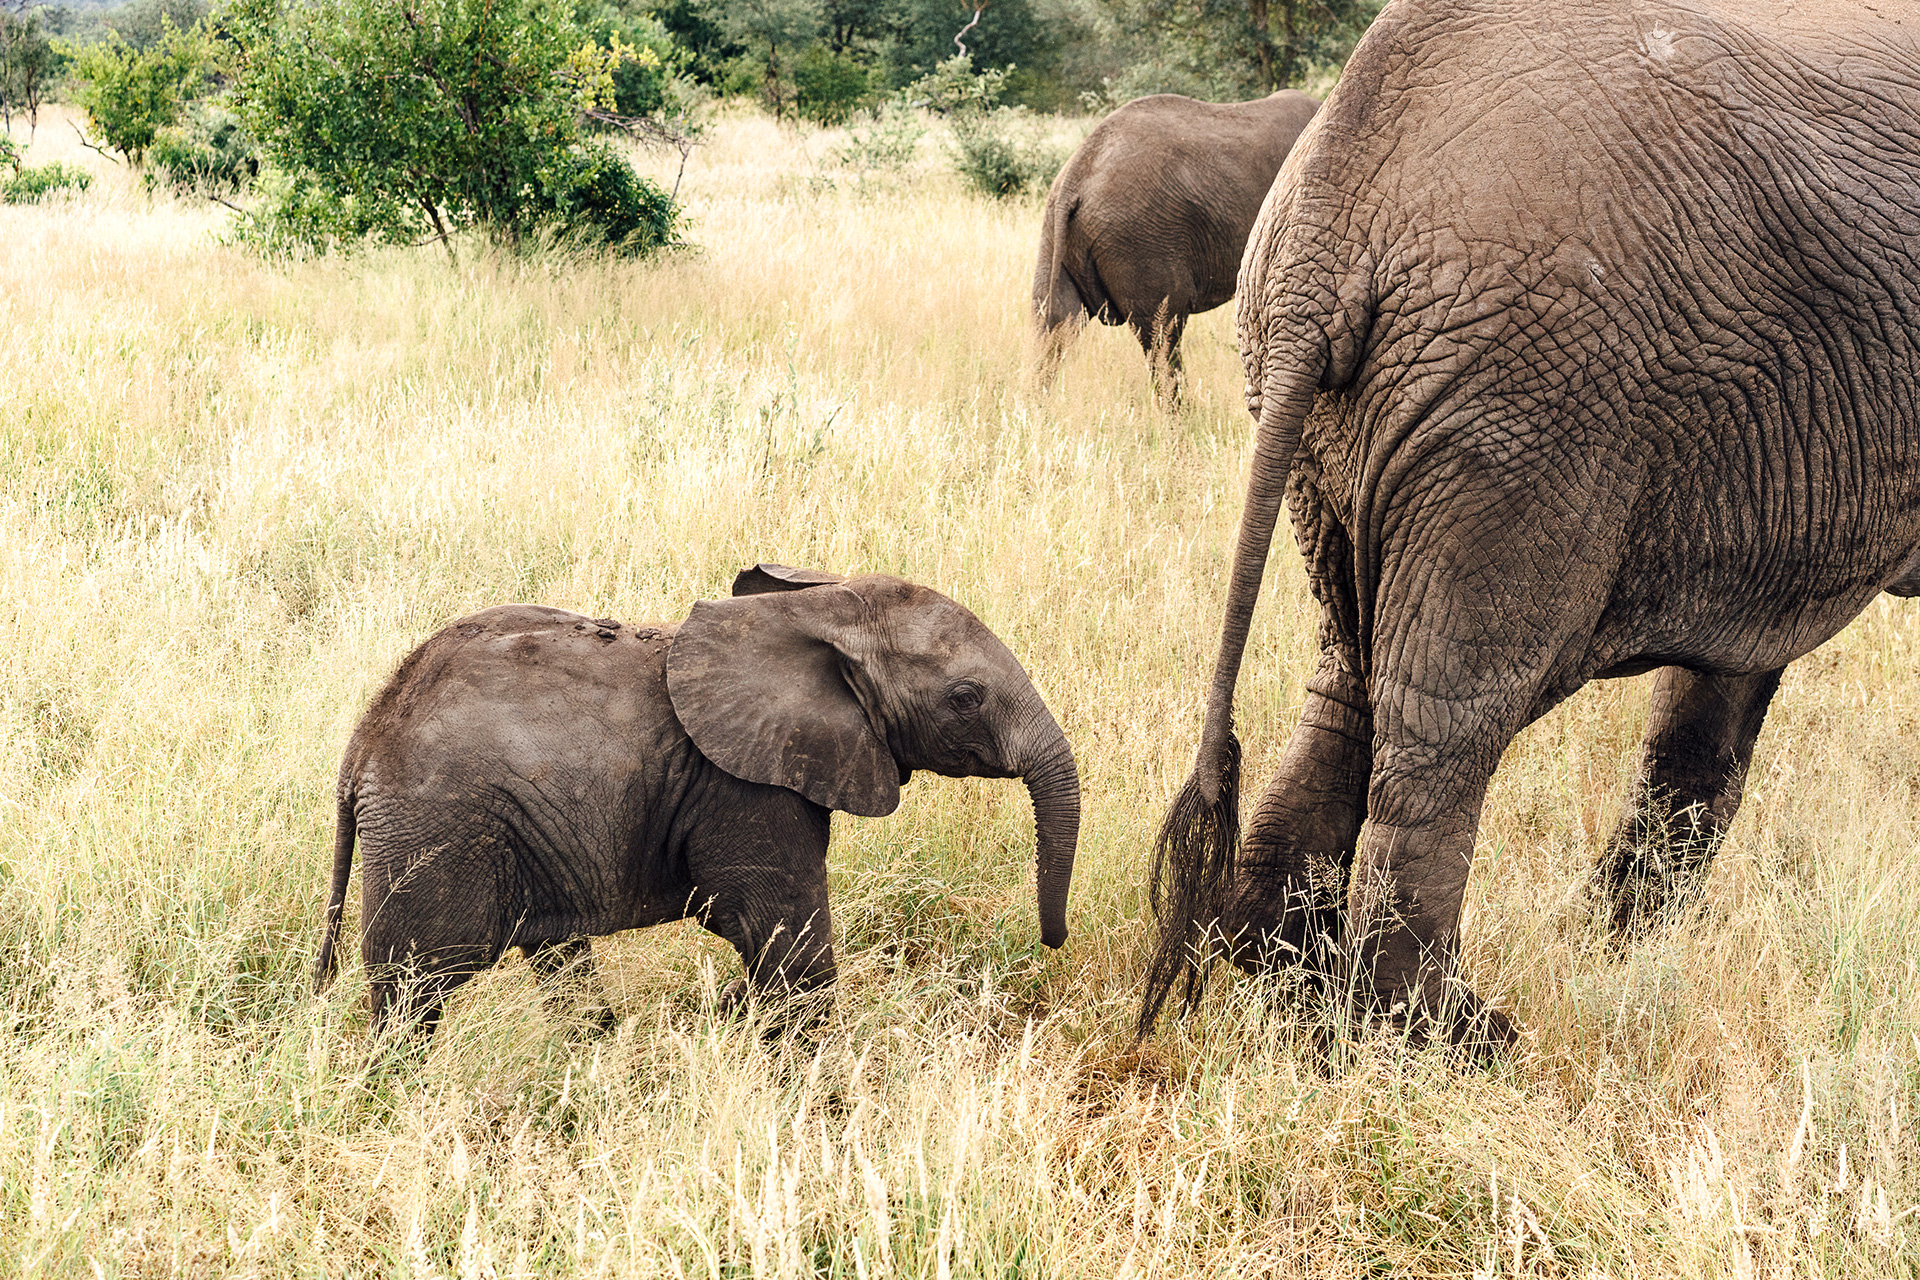 Tanda Tula - elephant and calf in South Africa on safari